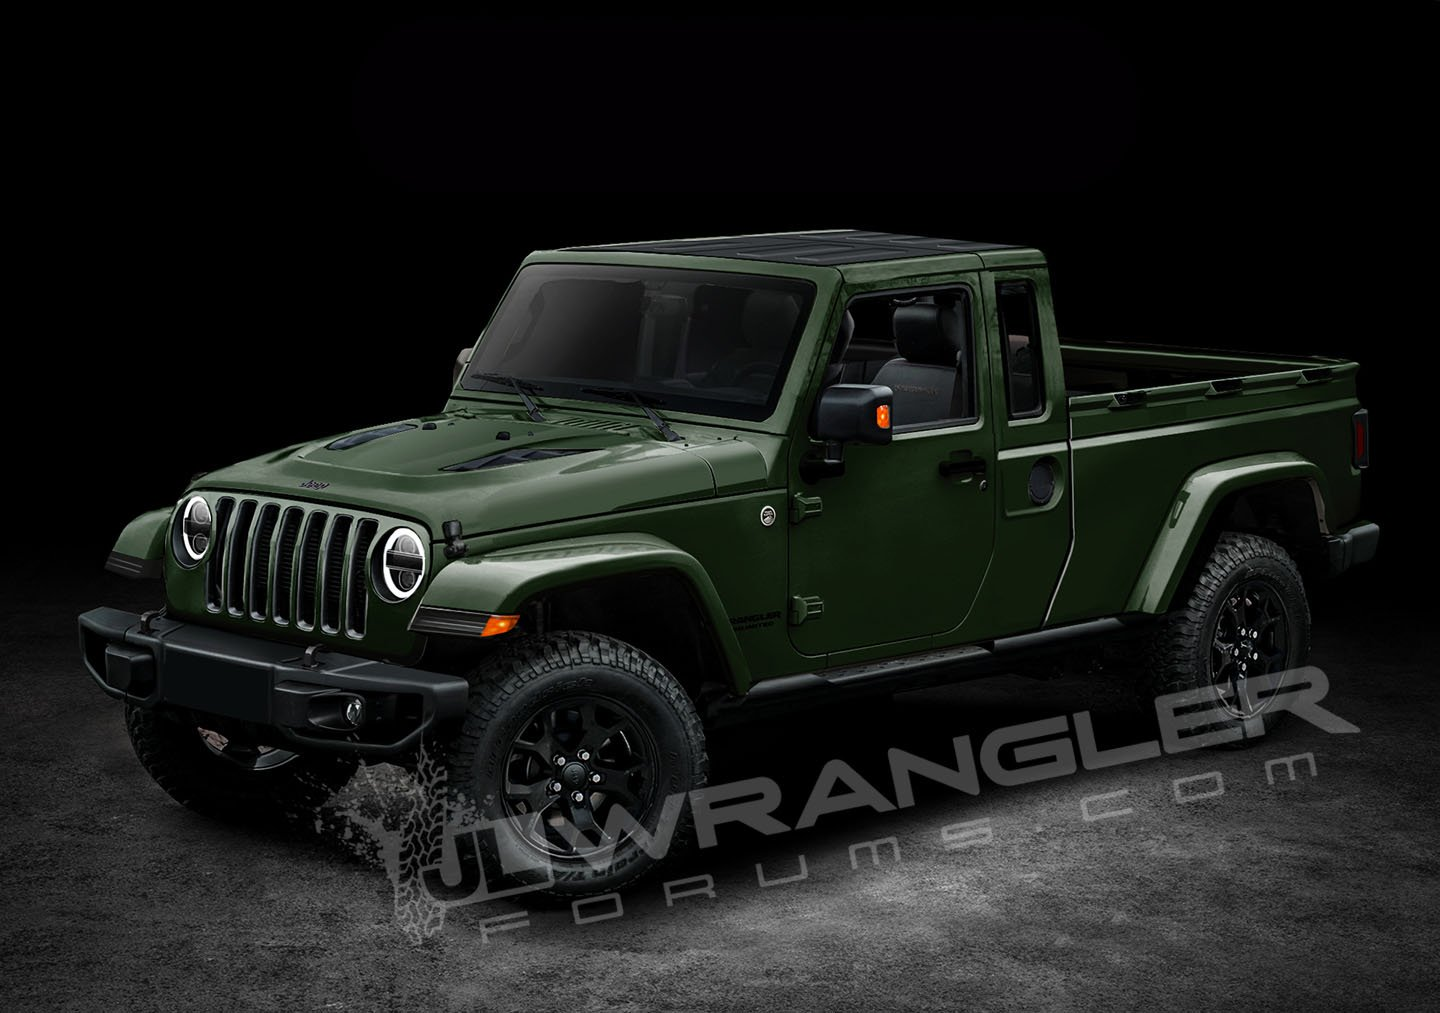 2017 Jeep Wrangler Pickup Price >> 2019 Jeep Wrangler Pickup Looks Scrambler-rific In Latest Renderings | Carscoops